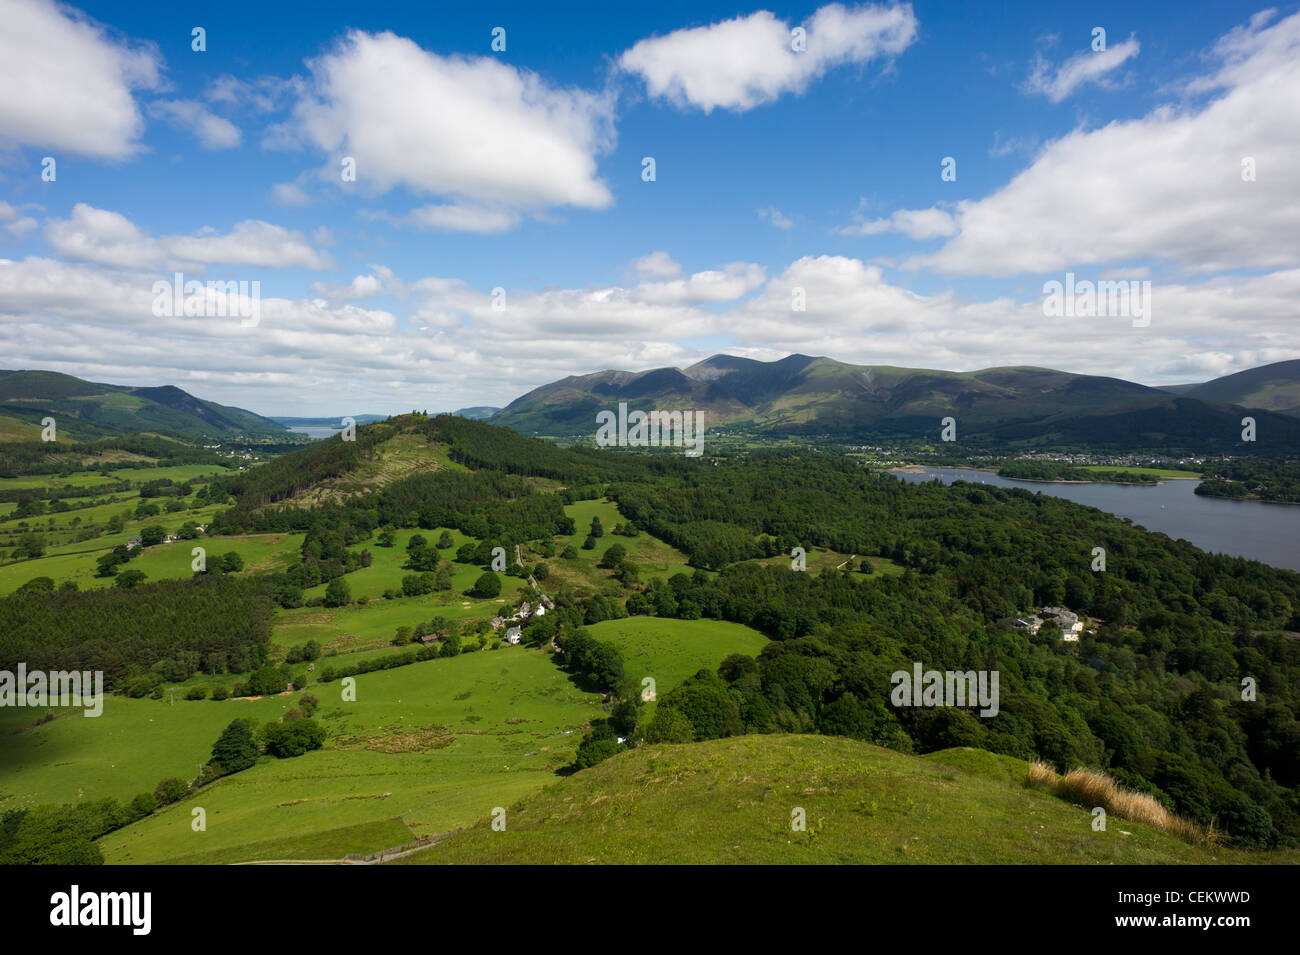 View of Derwent Water and Newlands Valley from the summit of Catbells, Lake District, UK - Stock Image